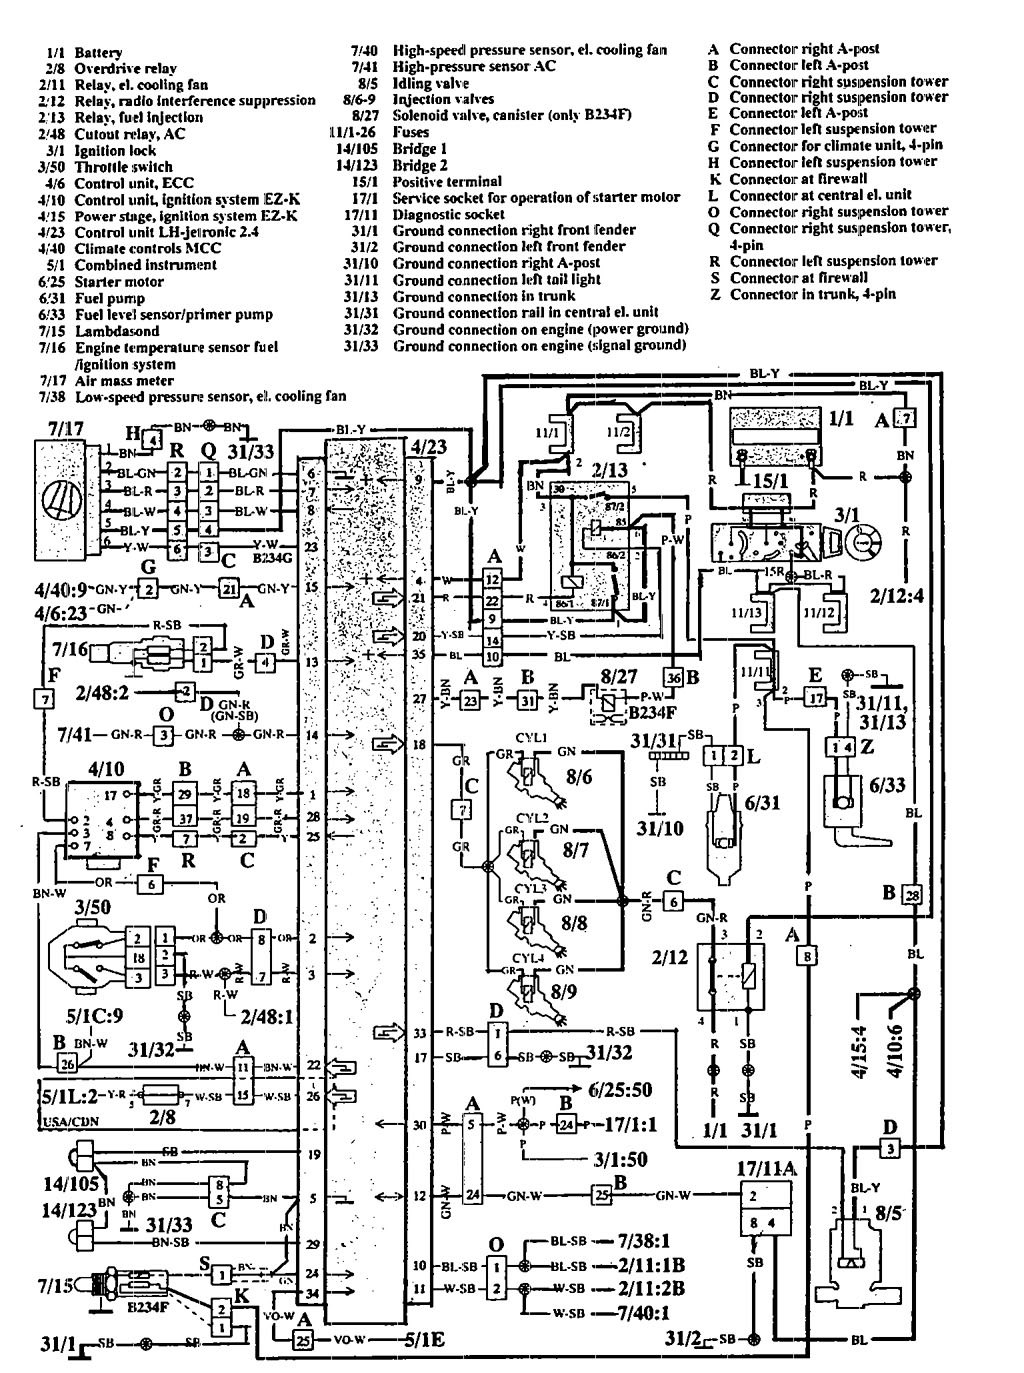 1995 Volvo 940 Ac Wiring Diagram - Wiring Diagram Text fast-improve -  fast-improve.albergoristorantecanzo.it | Volvo 940 Ac Wiring Diagram |  | fast-improve.albergoristorantecanzo.it